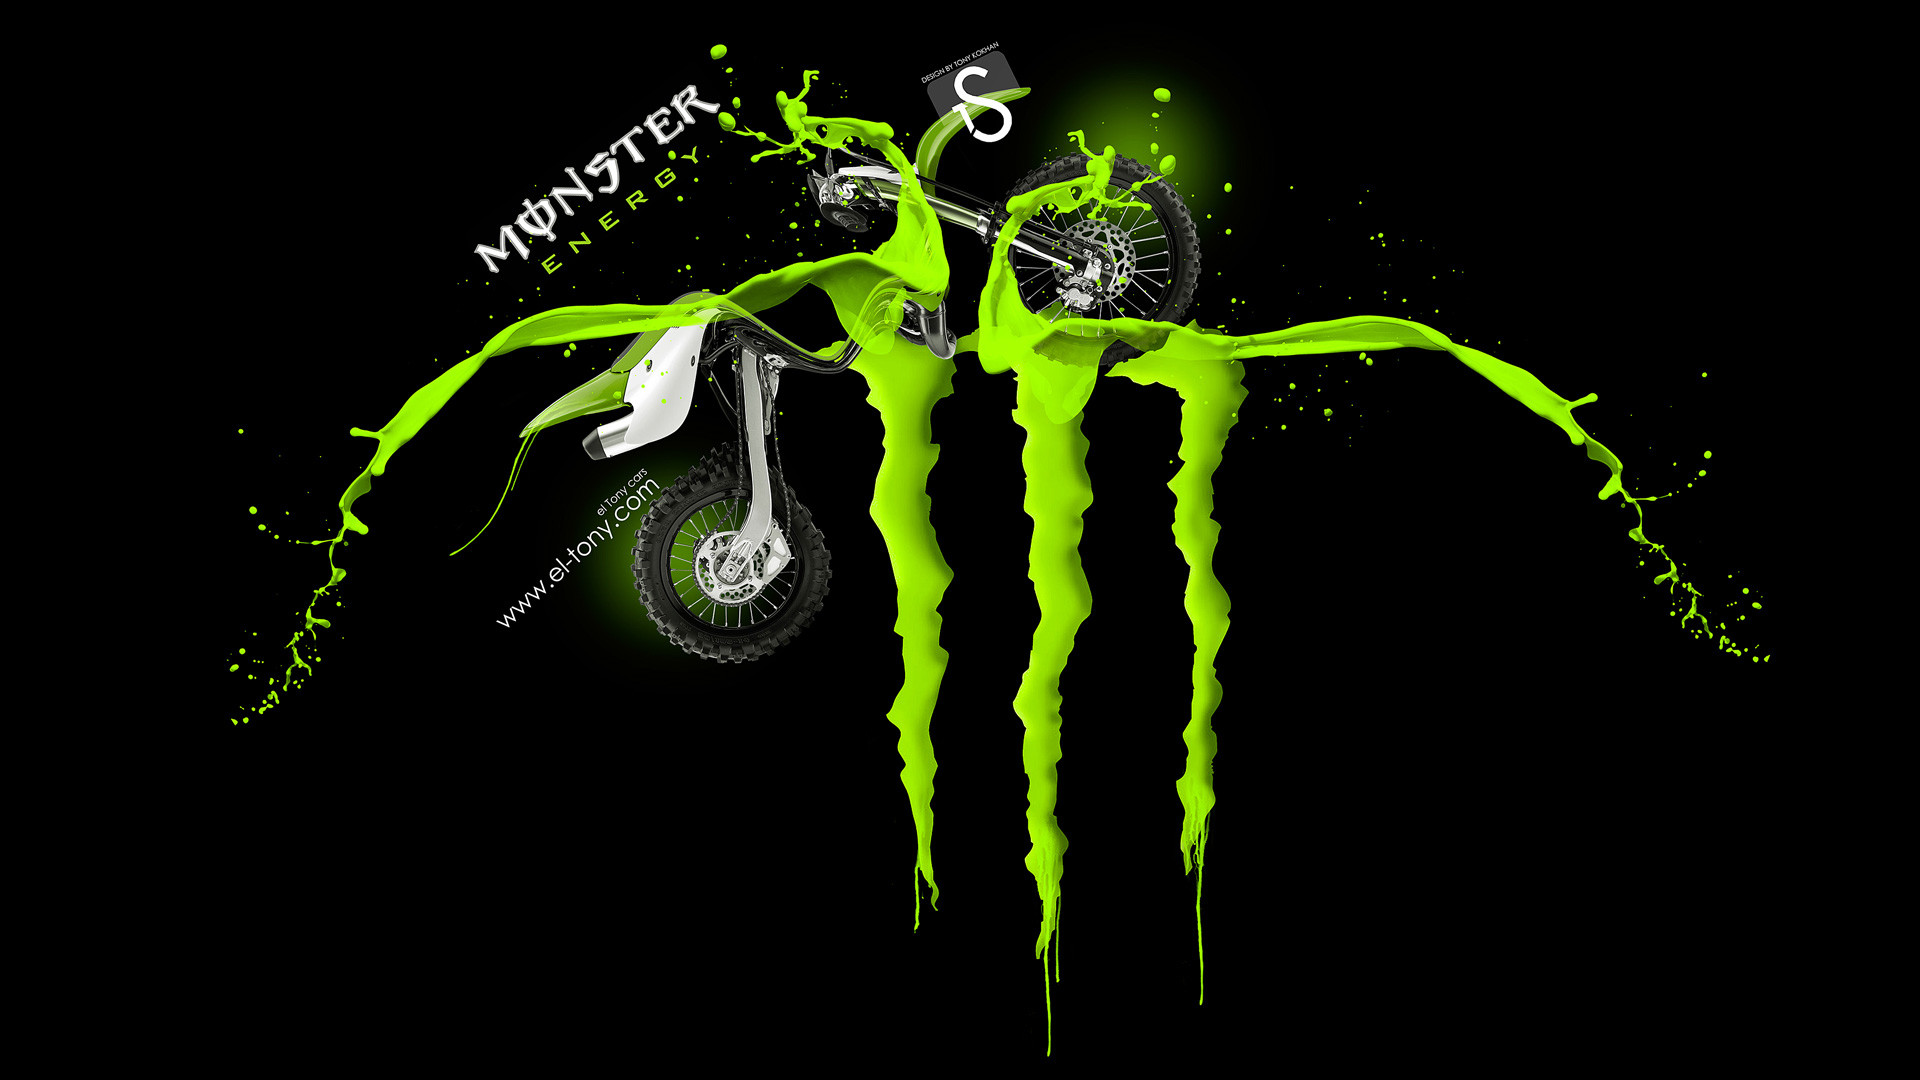 Hansen Motocross Monster Energy Wallpaper Hd 1920x1280